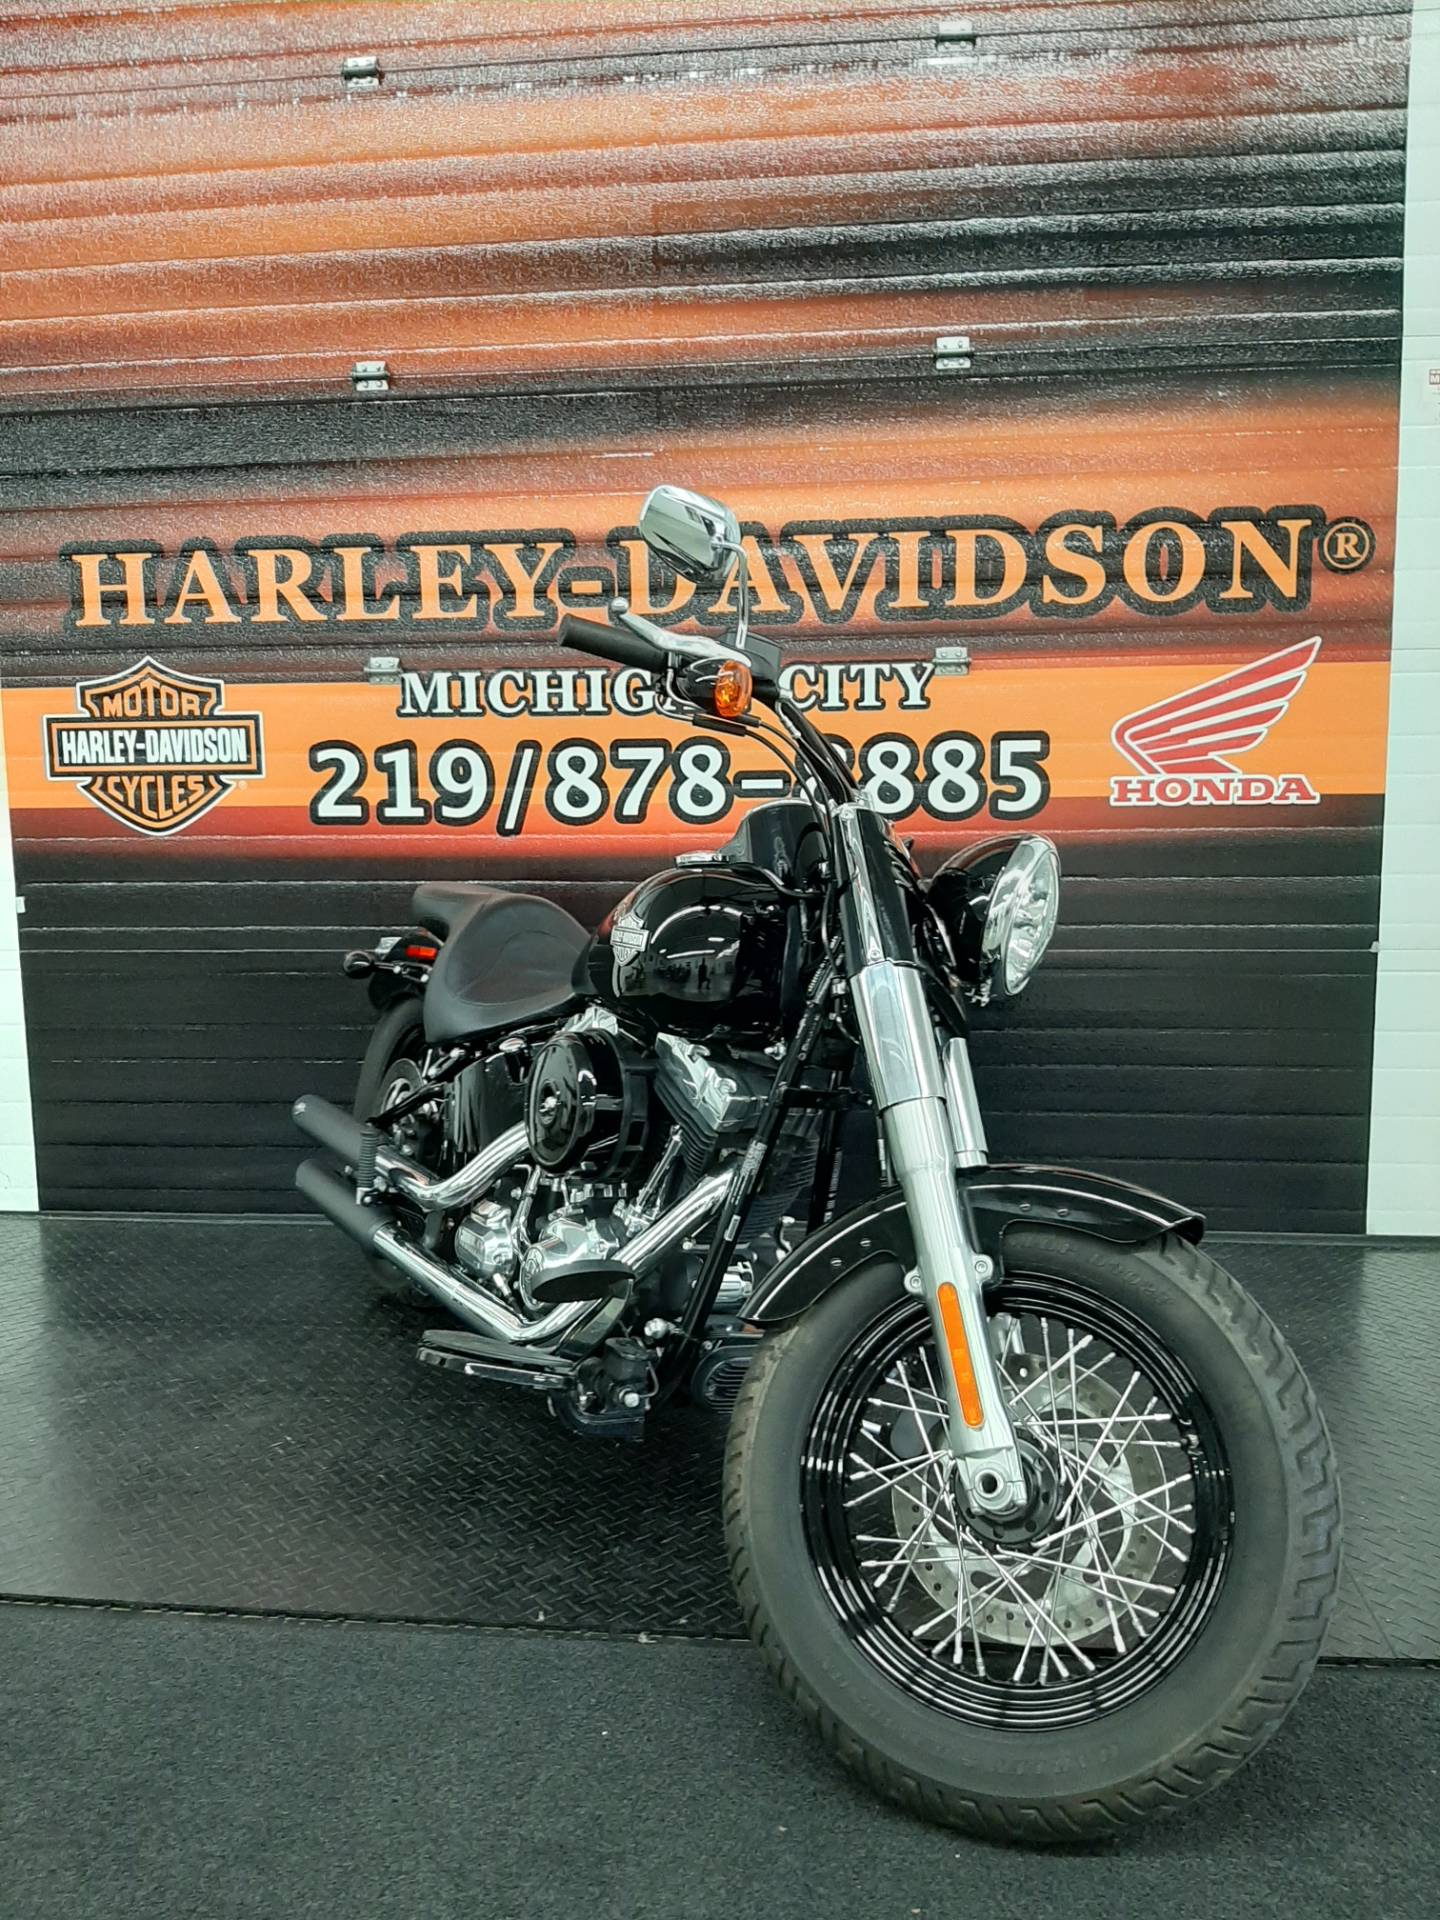 2015 Harley-Davidson Softail®Slim in Michigan City, Indiana - Photo 2